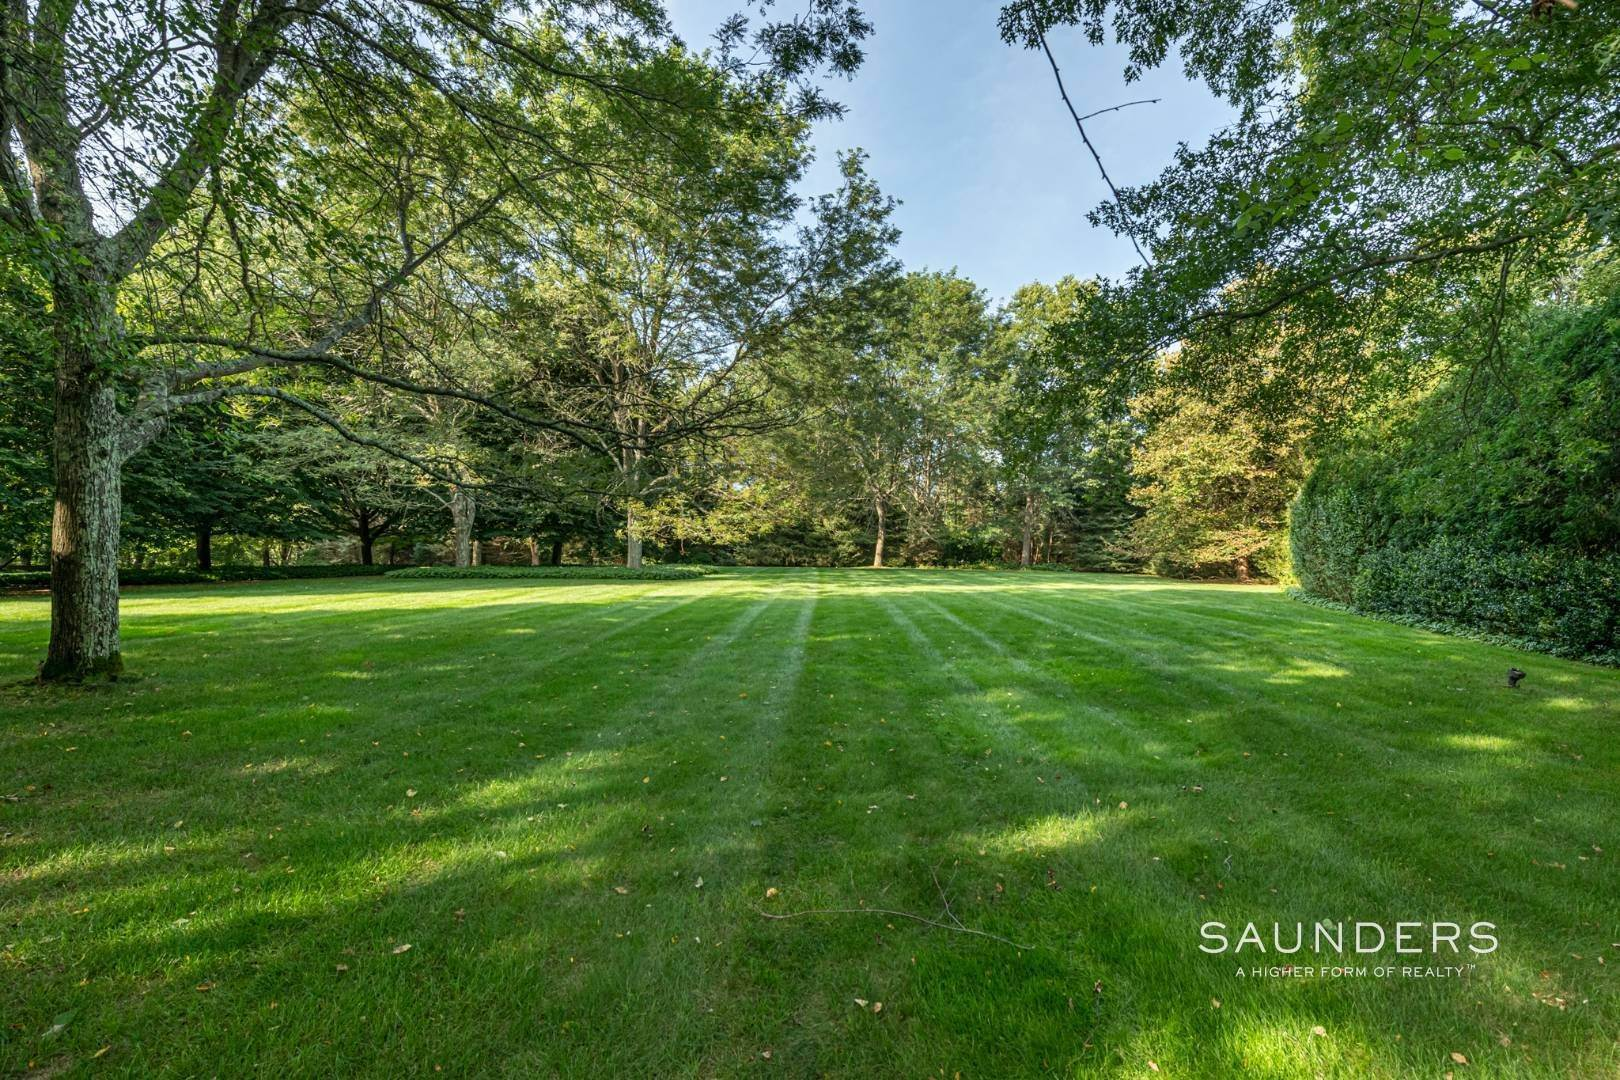 Land for Sale at Waterfront Land In Bridgehampton South 160 Trelawney Road, Bridgehampton, Southampton Town, NY 11932